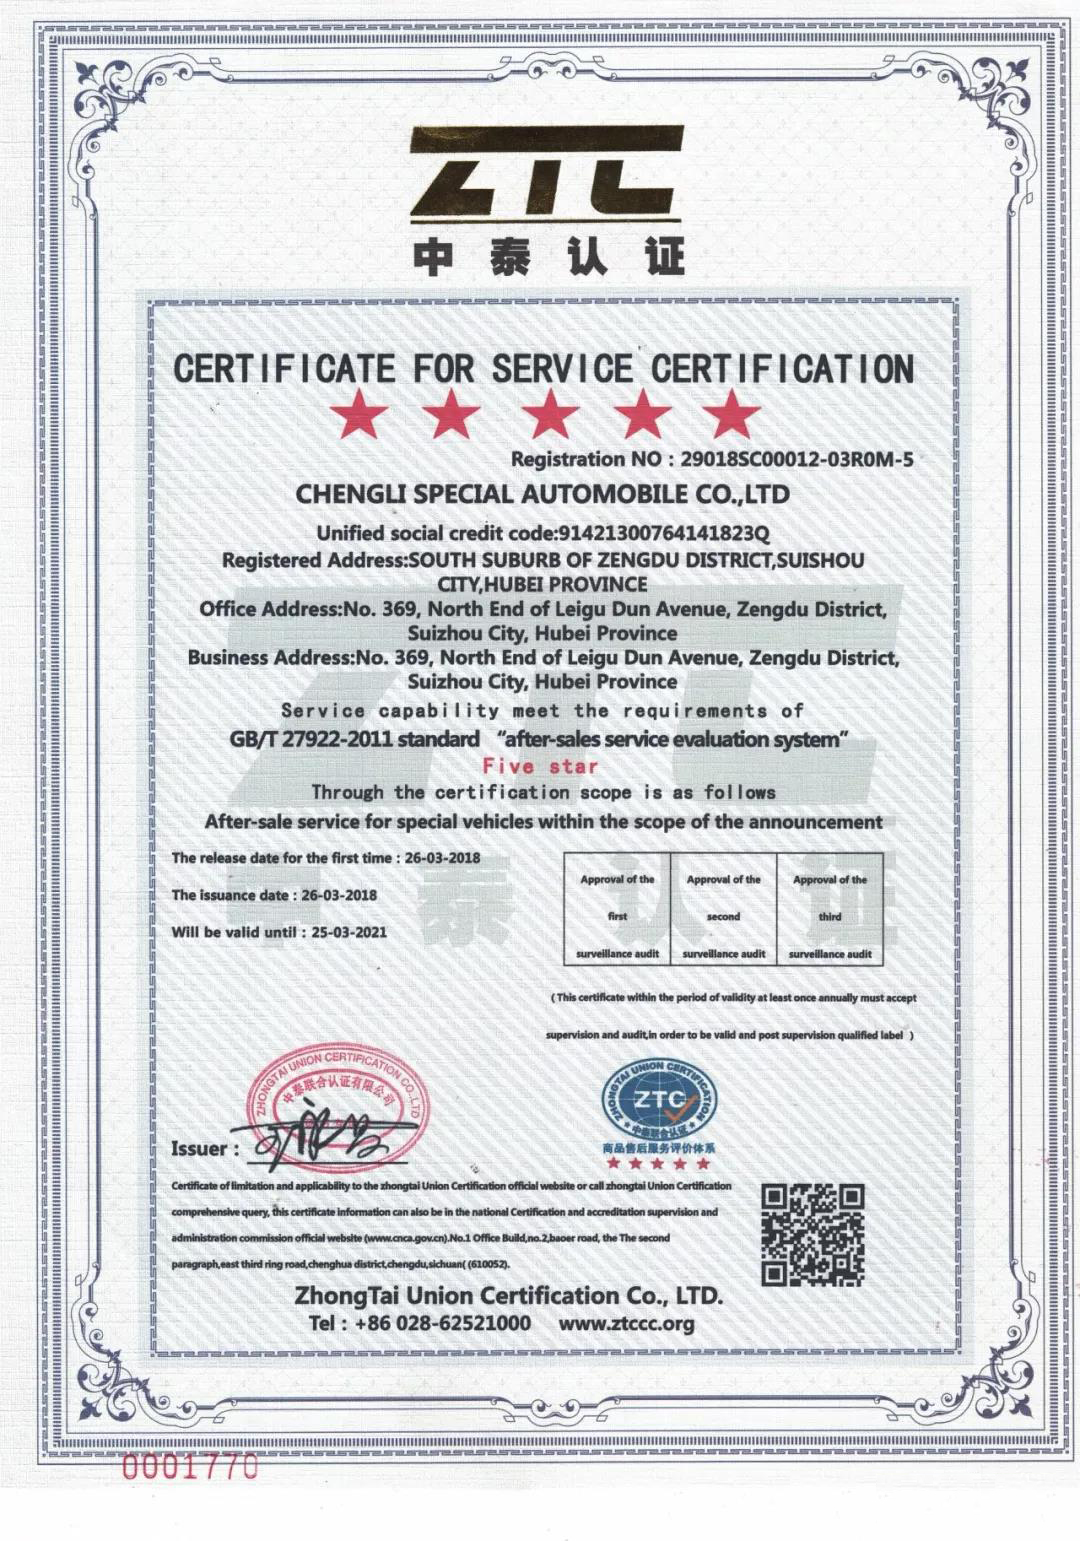 English- certificate of clw aftersales five stars service certification